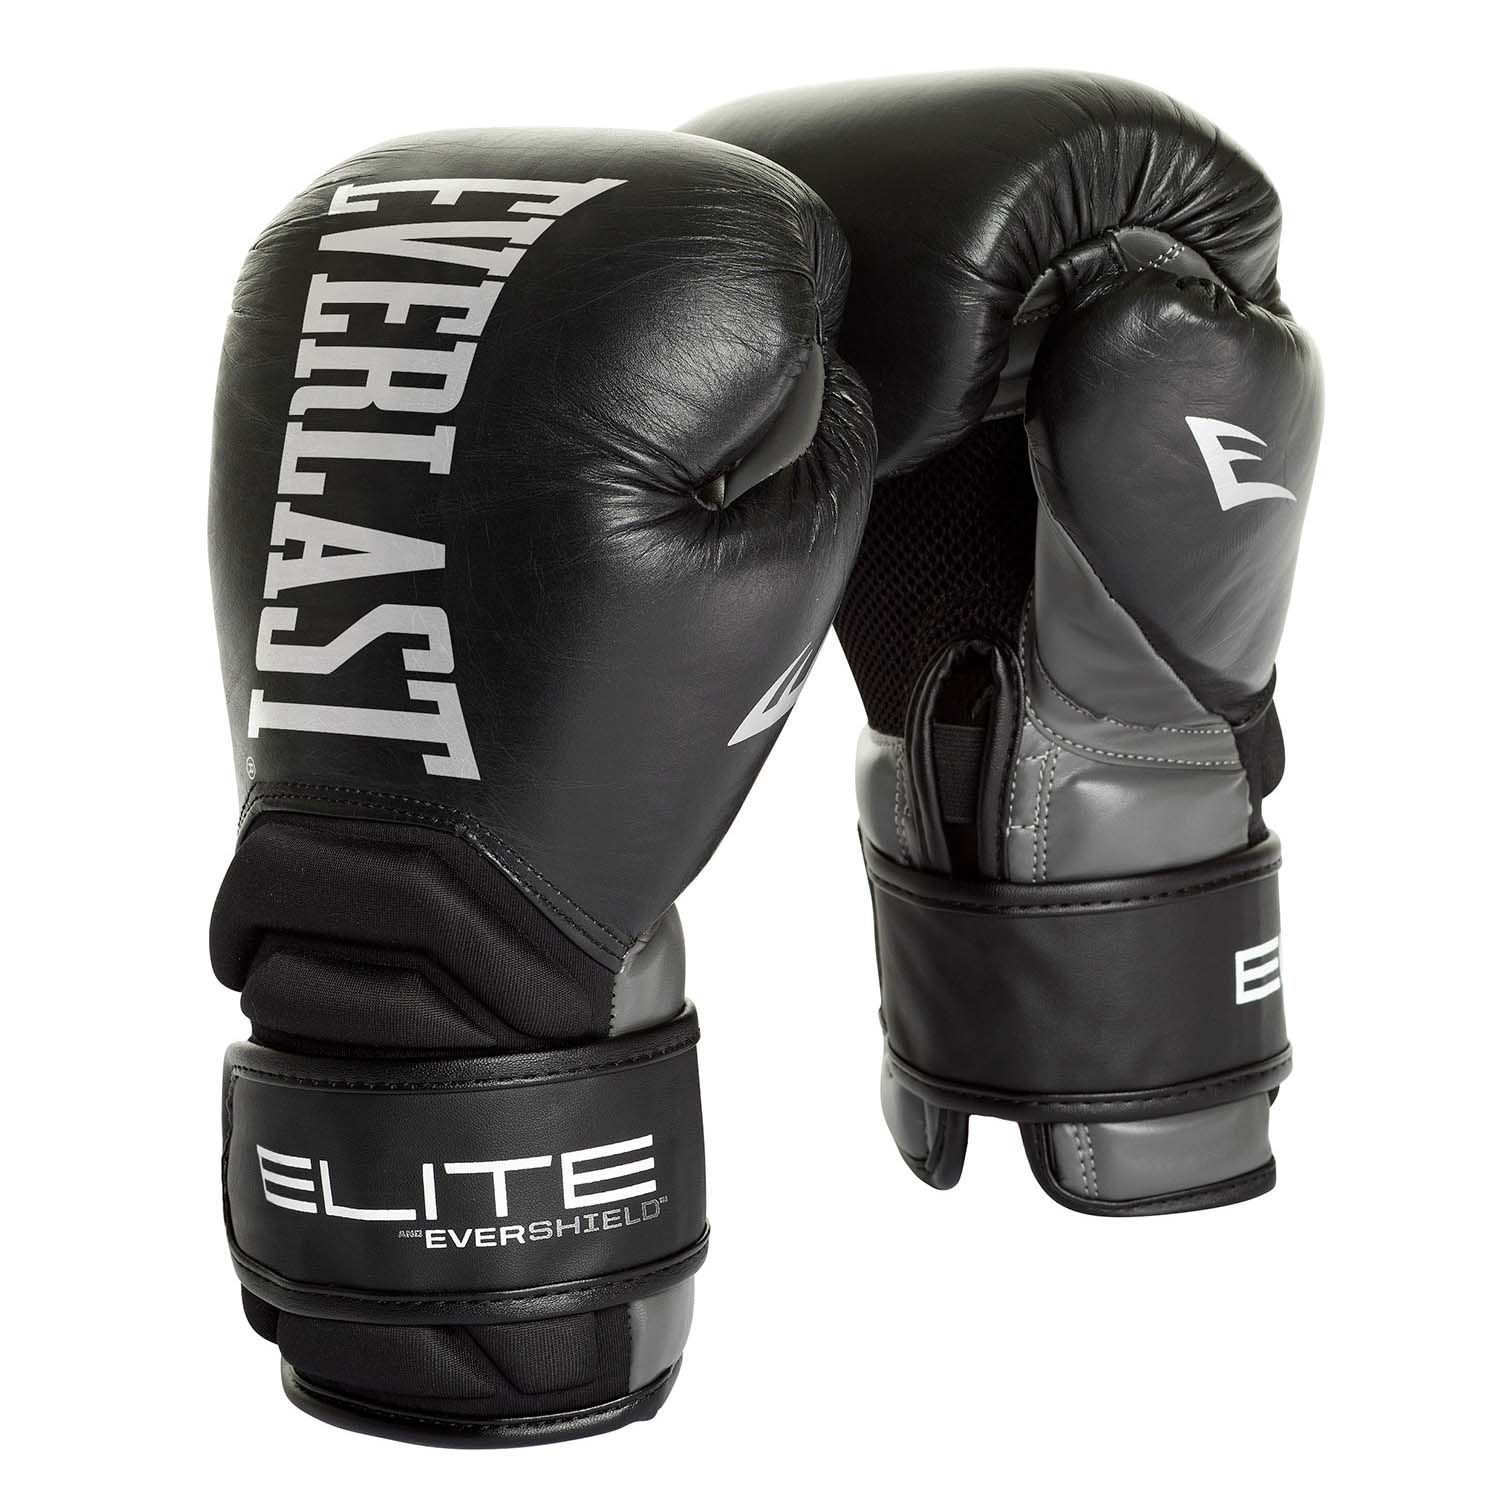 Contender Elite Glove 12oz